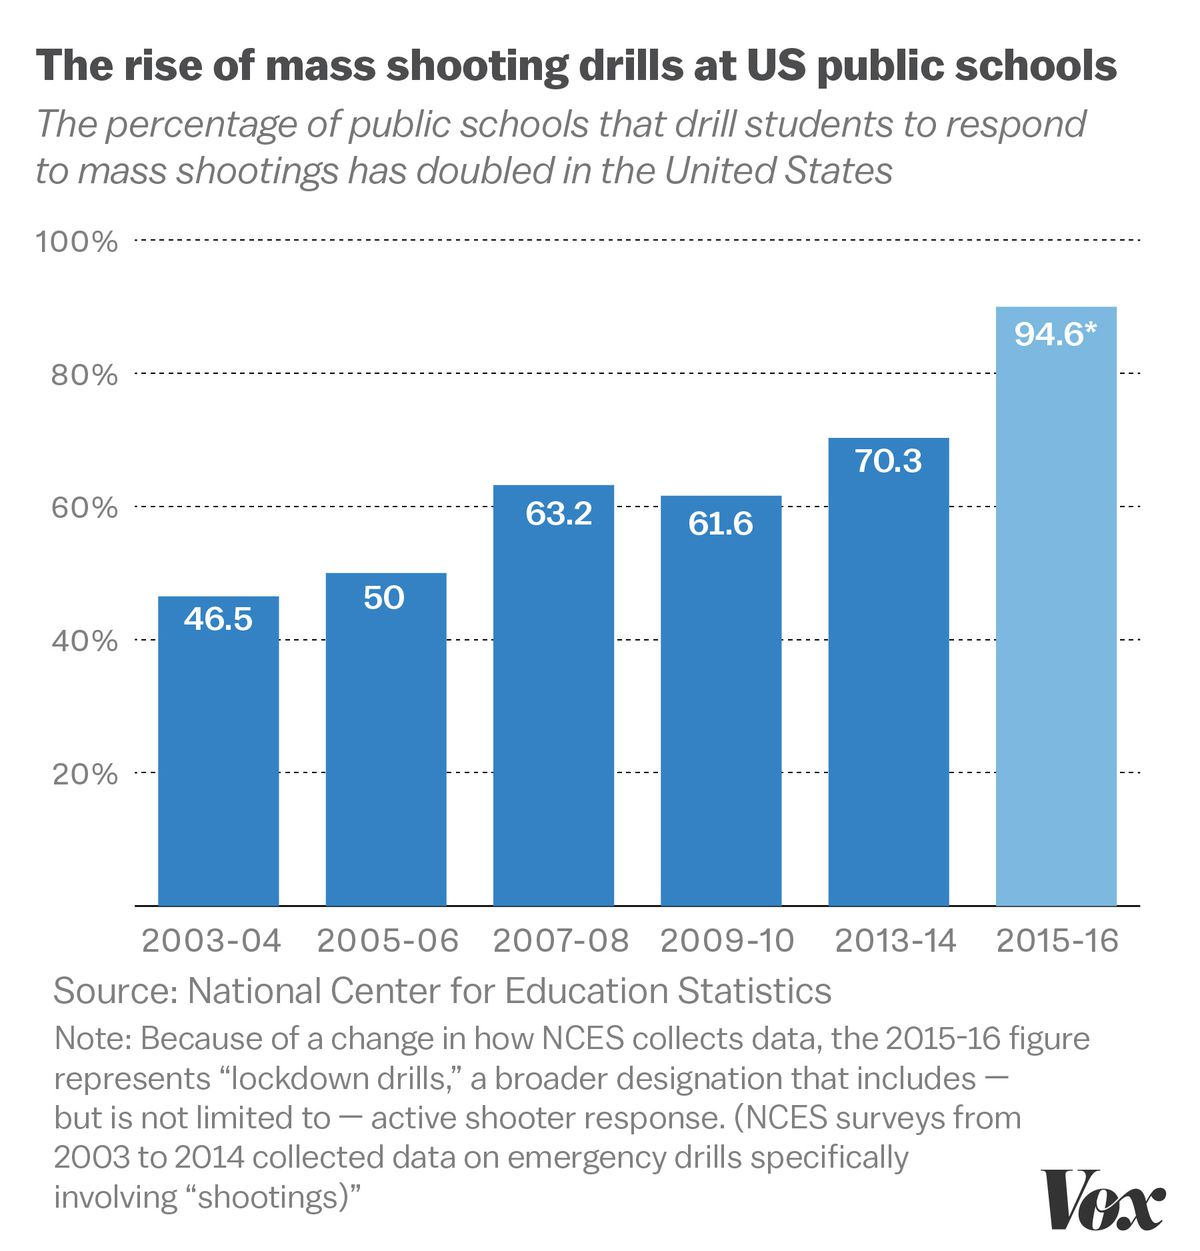 School Shooting Statistics 2018: National School Walkout: After Parkland, A Push For More